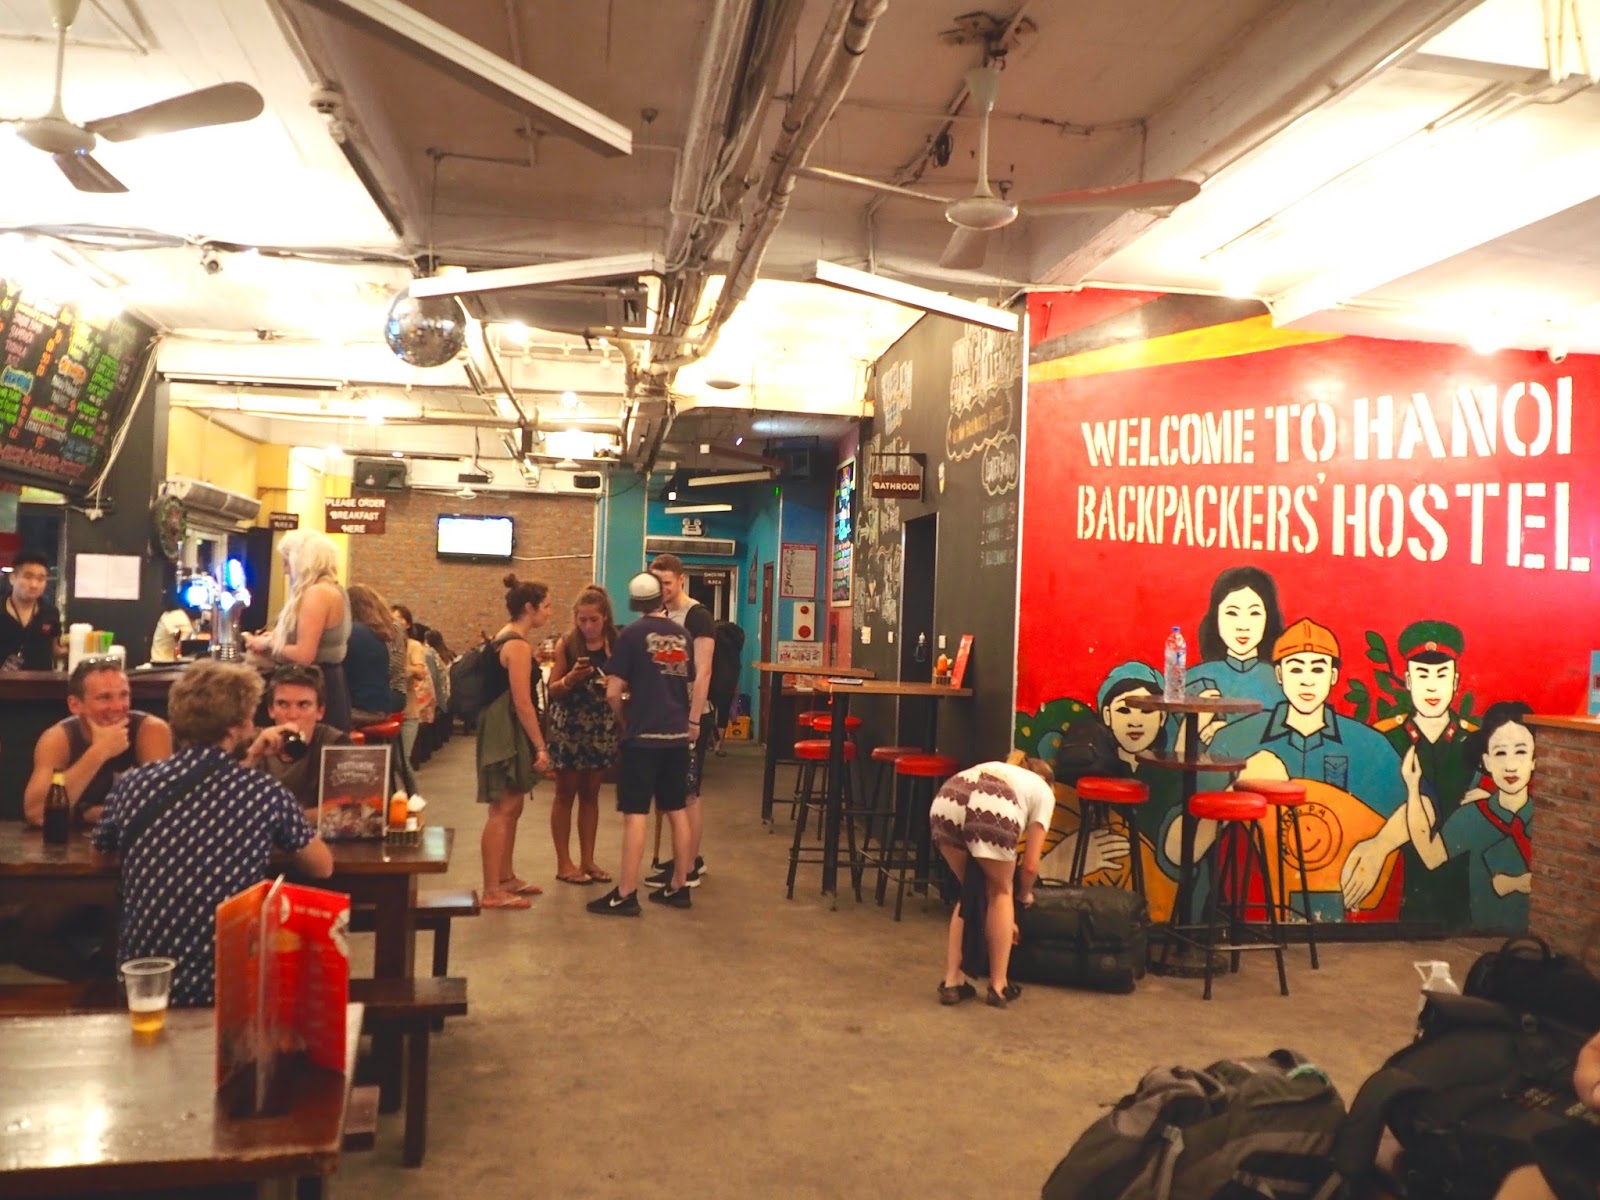 REVIEW: Vietnam Backpacker Hostel Collection